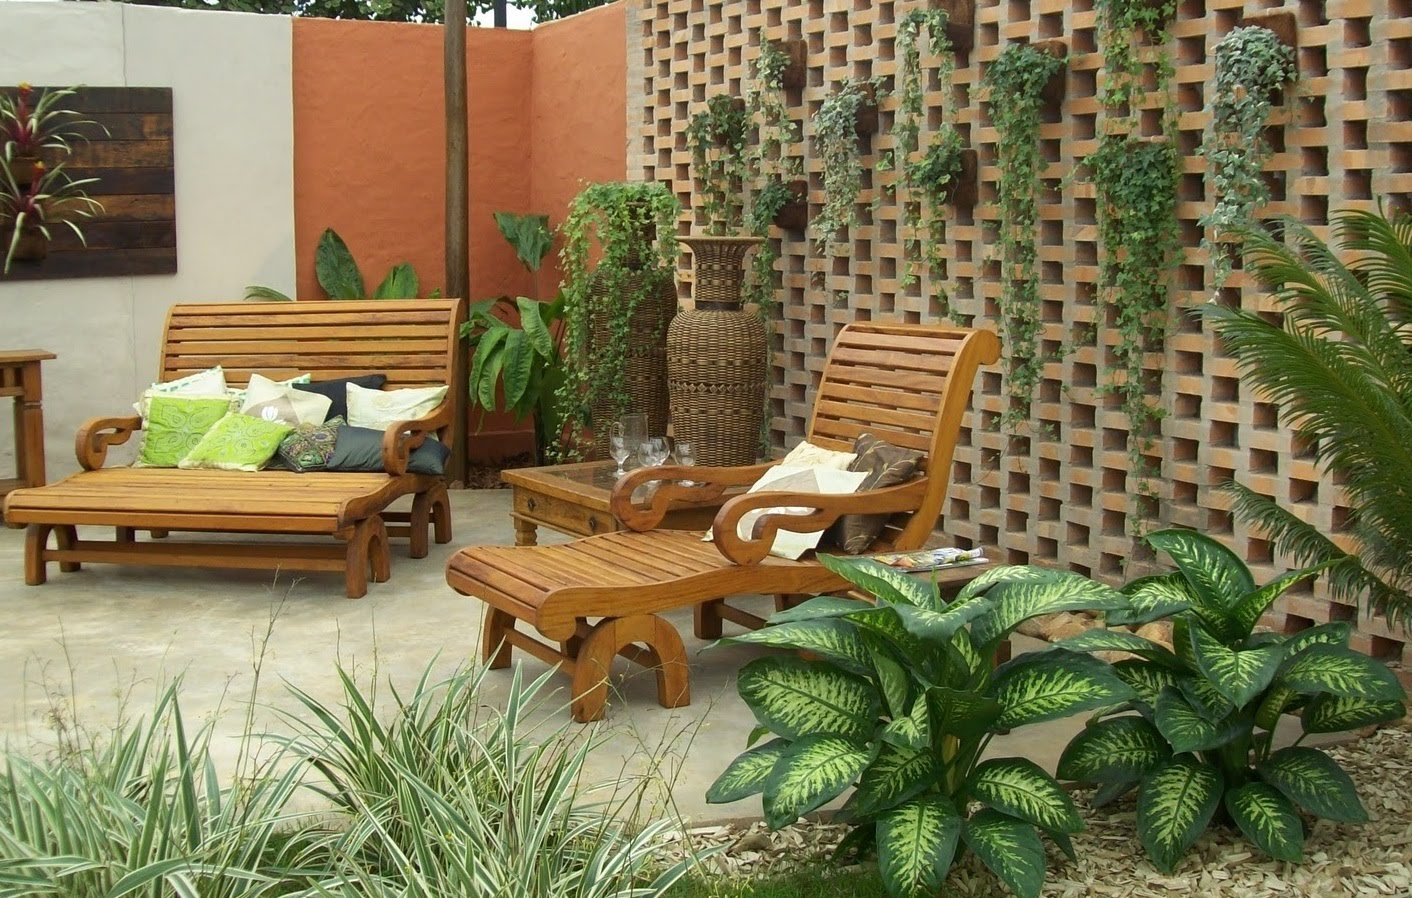 Jardines r sticos tendencia e ideas hoy lowcost for Decoracion de patios pequenos con plantas